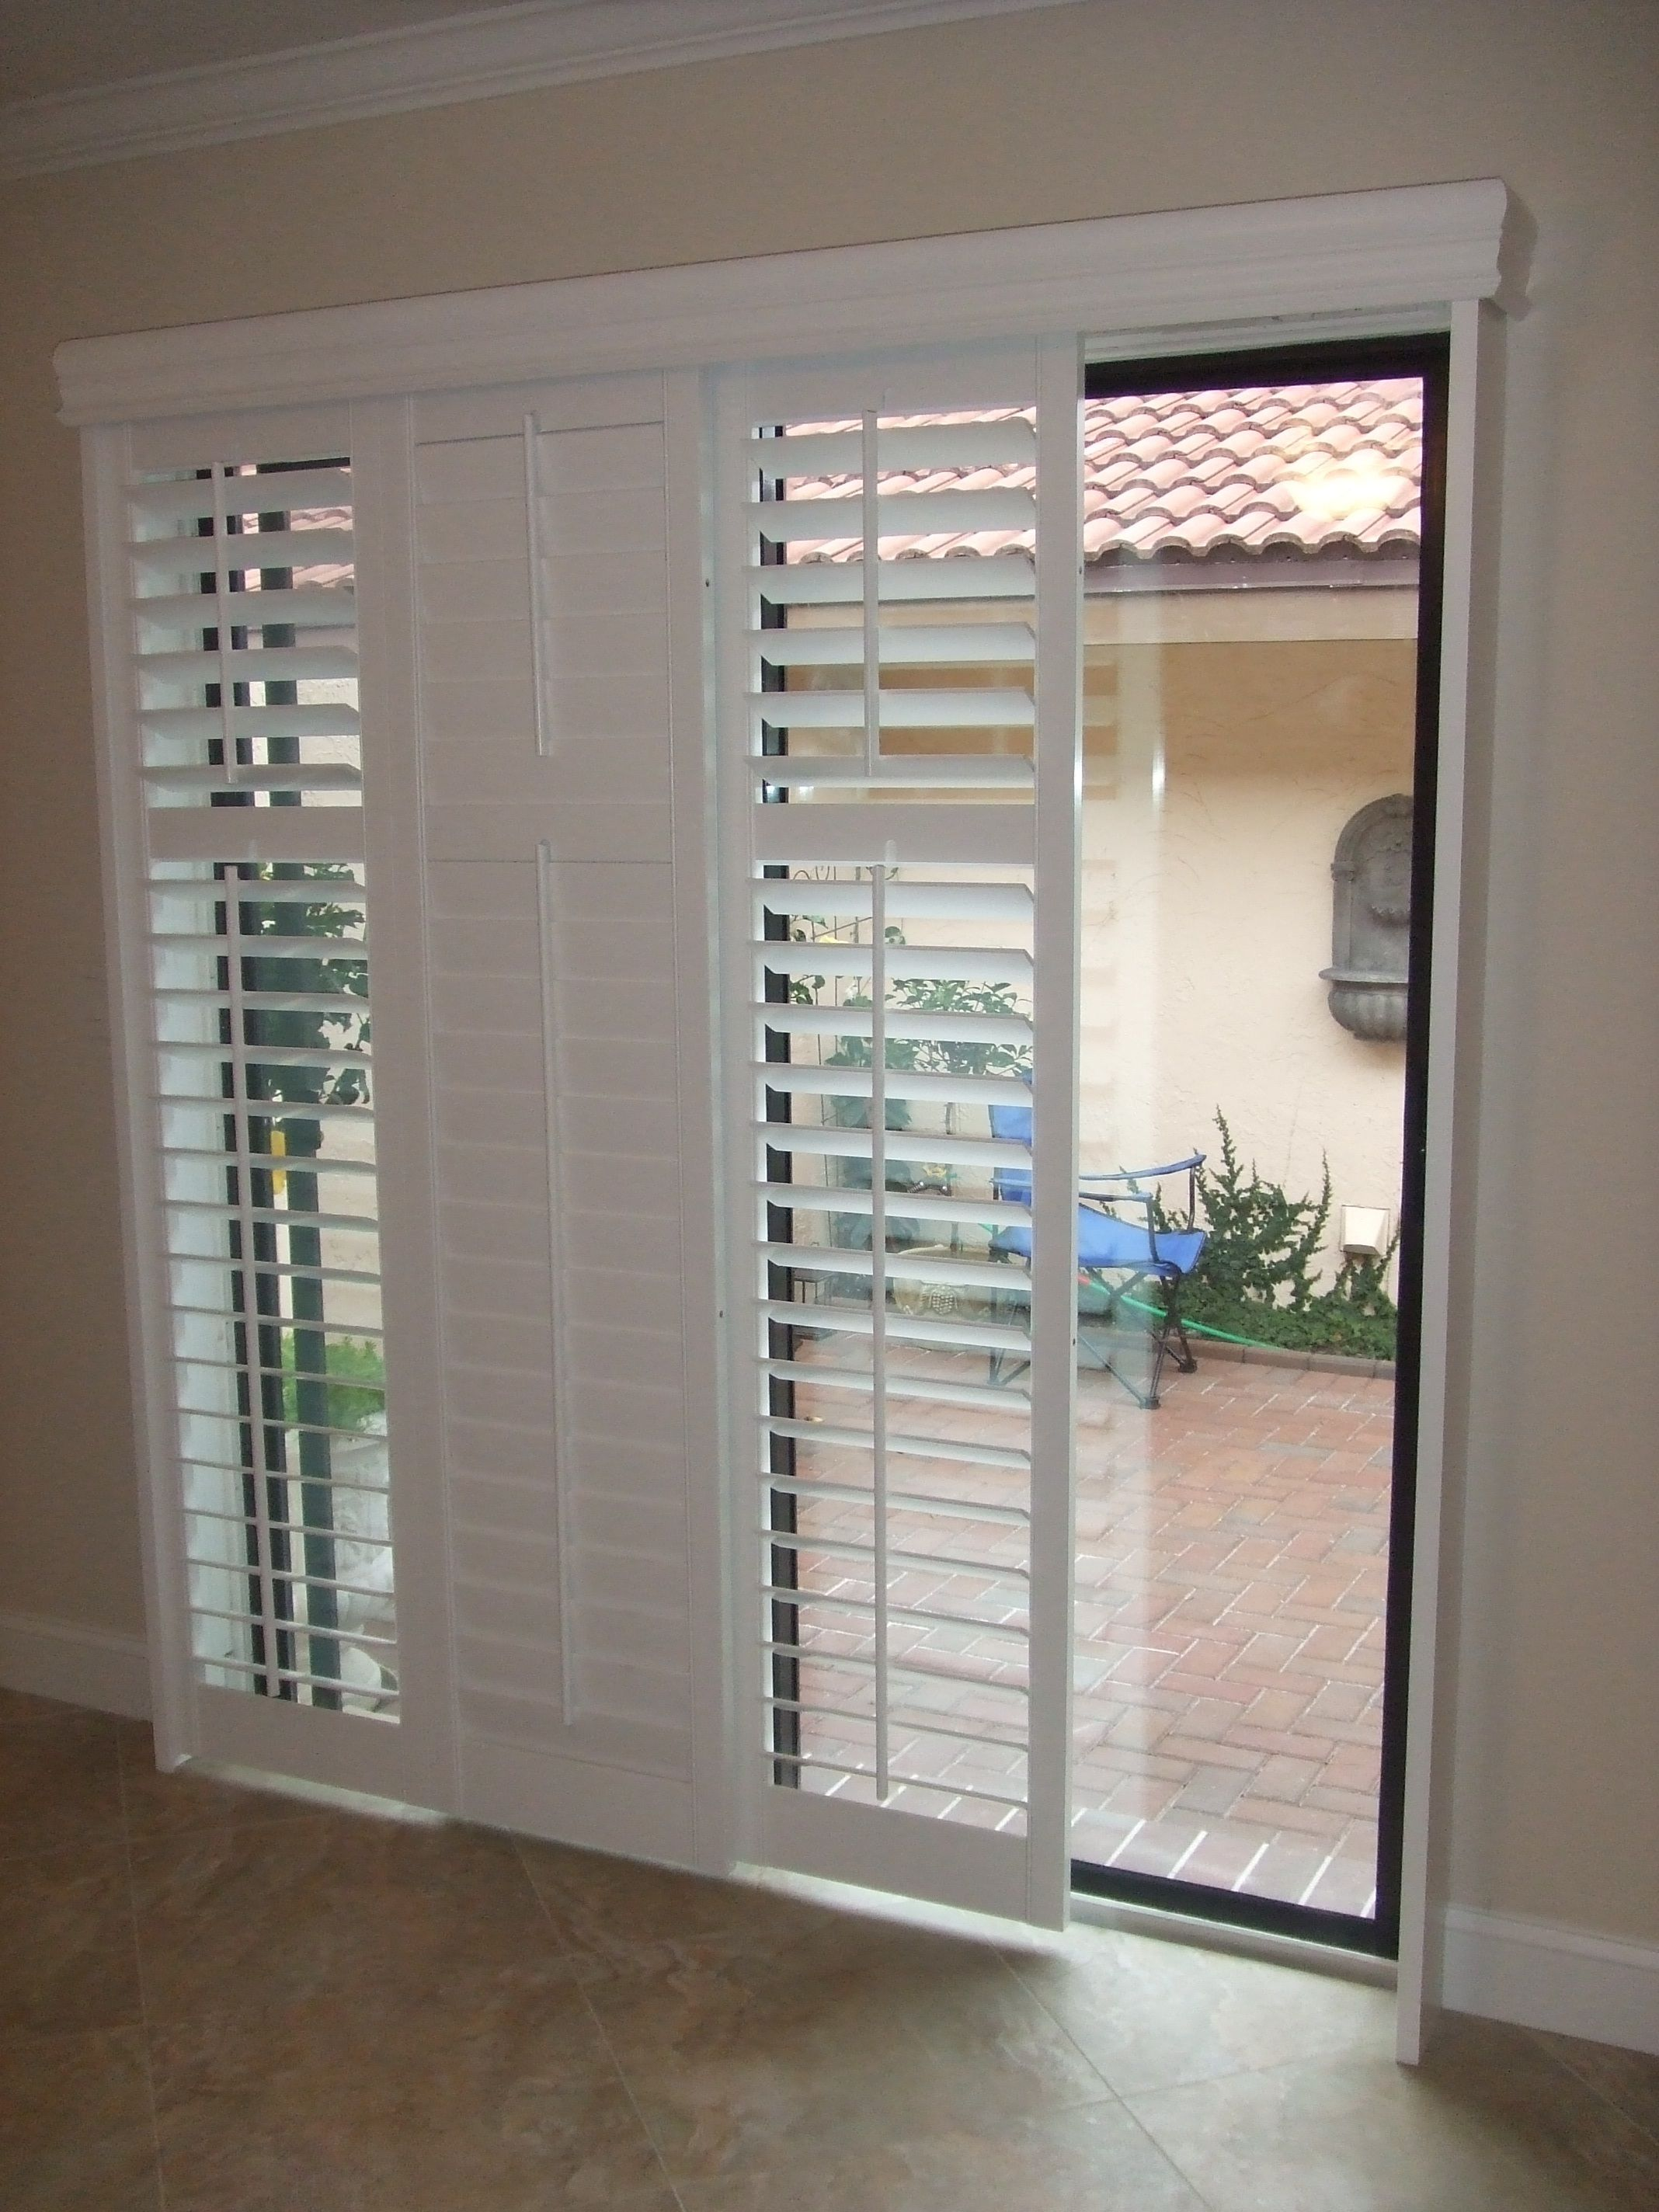 with great blinds in swing wallpaperblues ideas remodel doors the house fabulous fiberglass vinyl new french patio exterior series decorating wood amp photos stunning door